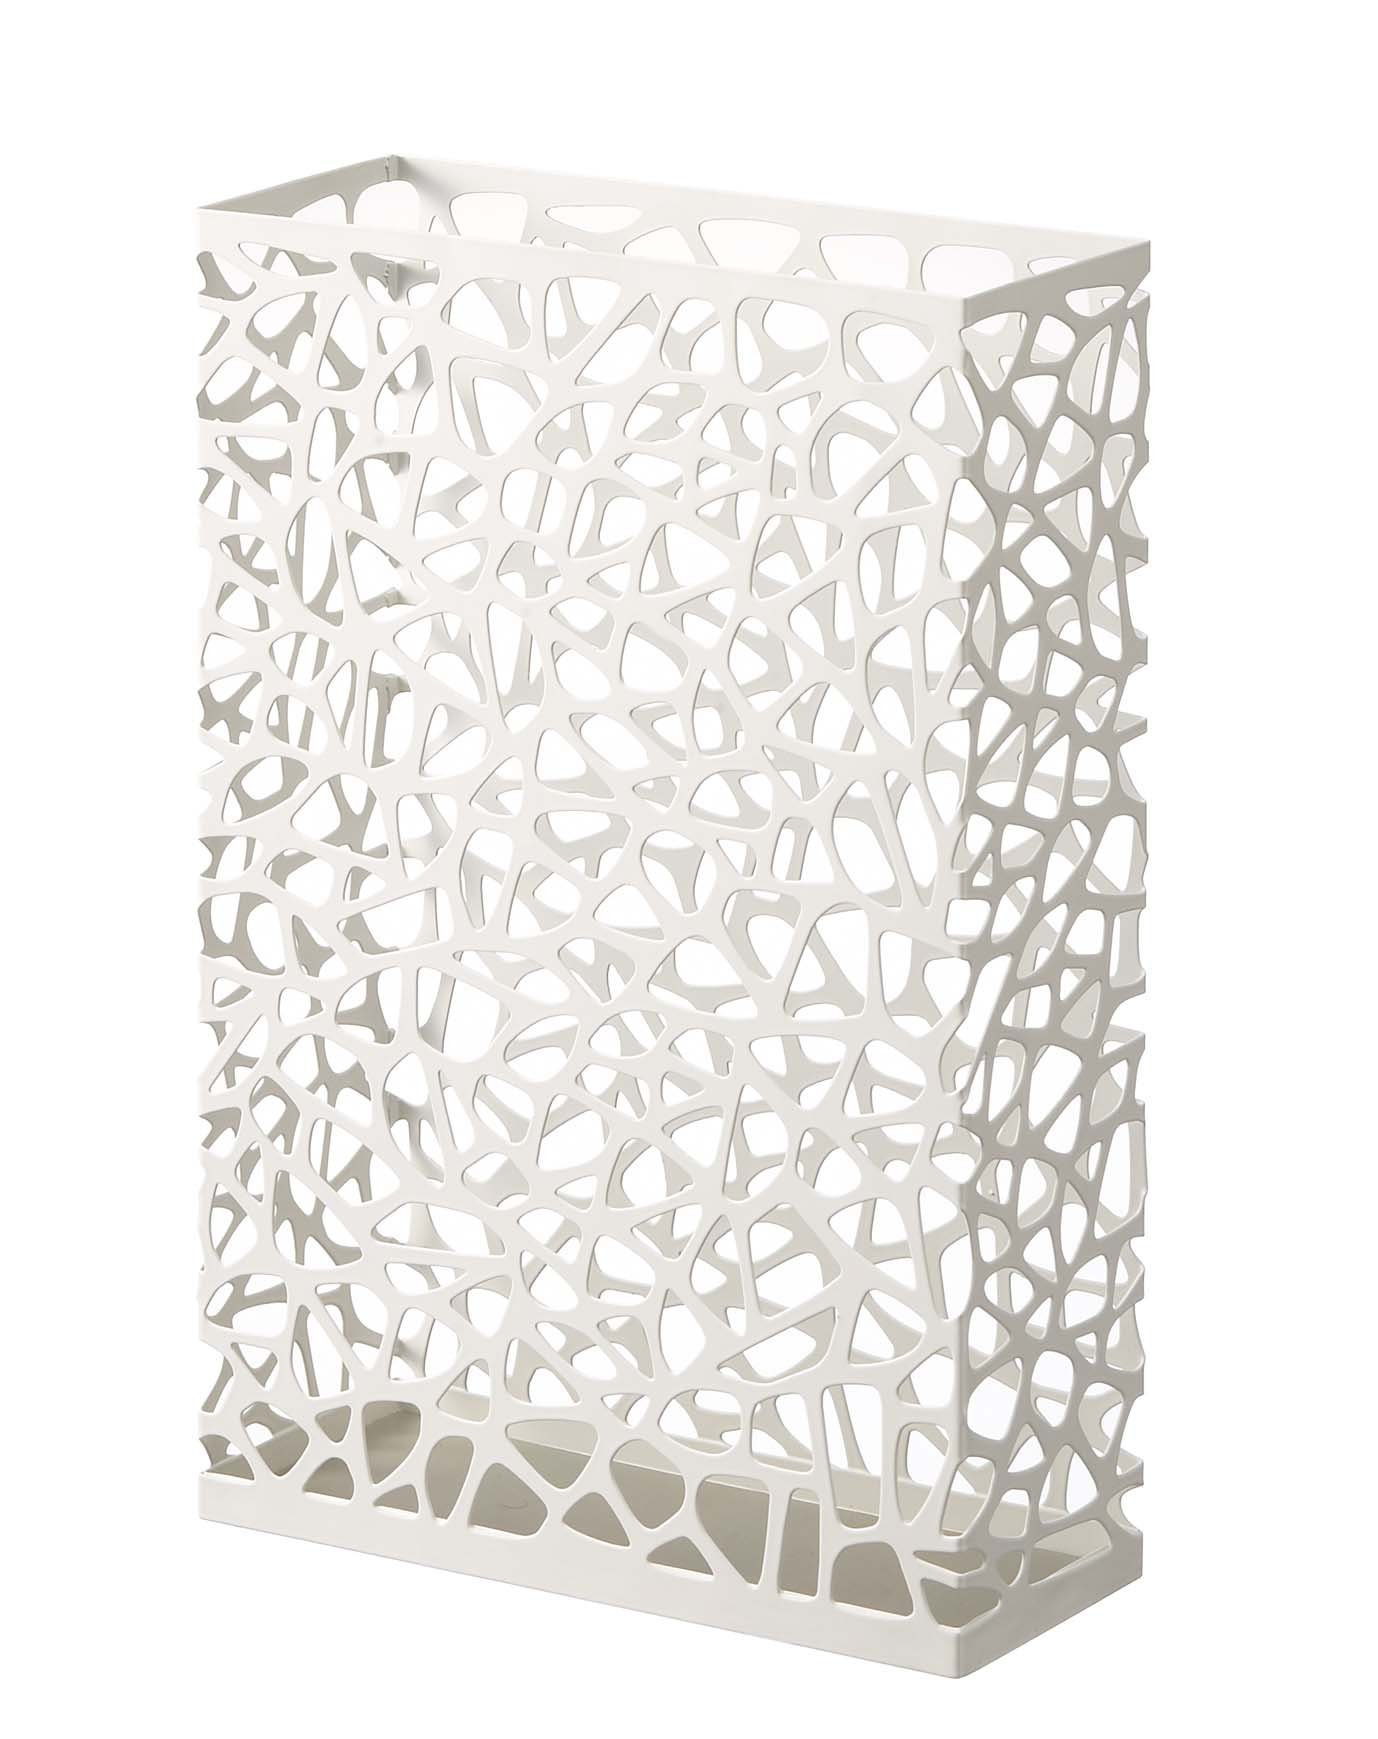 Nest - White Metal Rectangular Umbrella Stand by Umbrella Organizers